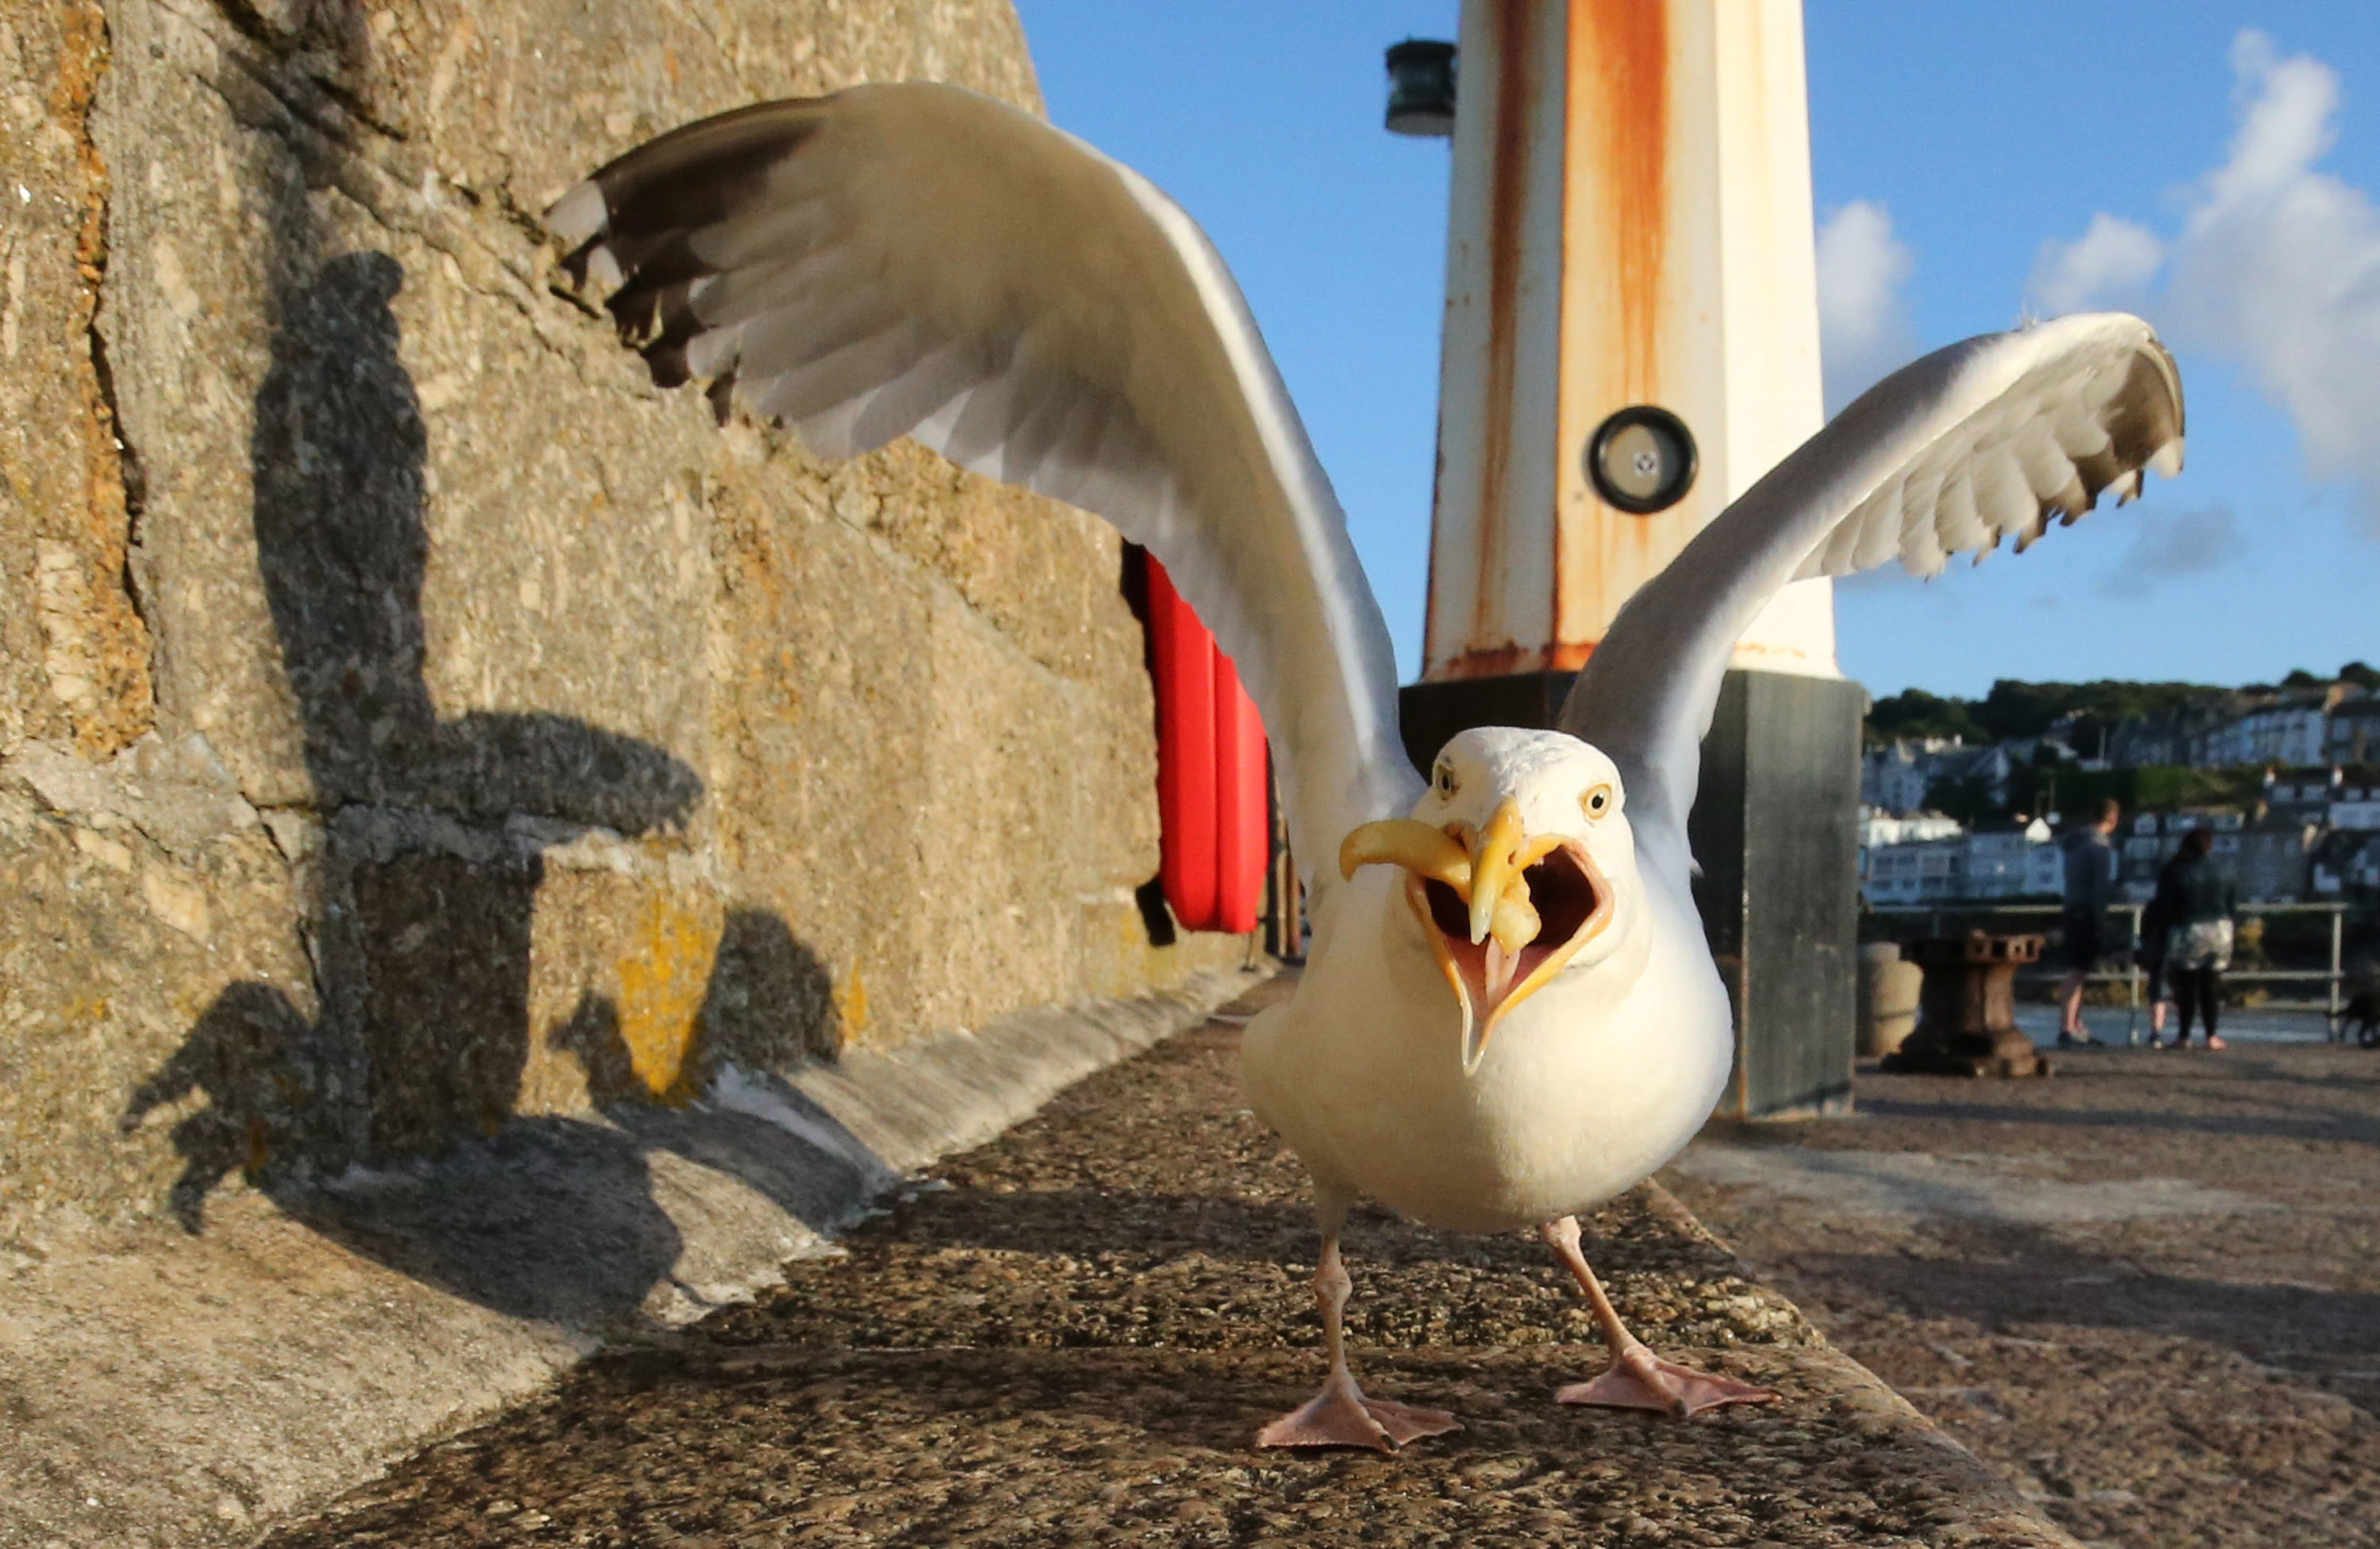 Experts say seagulls learn, remember and even pass on behaviours.